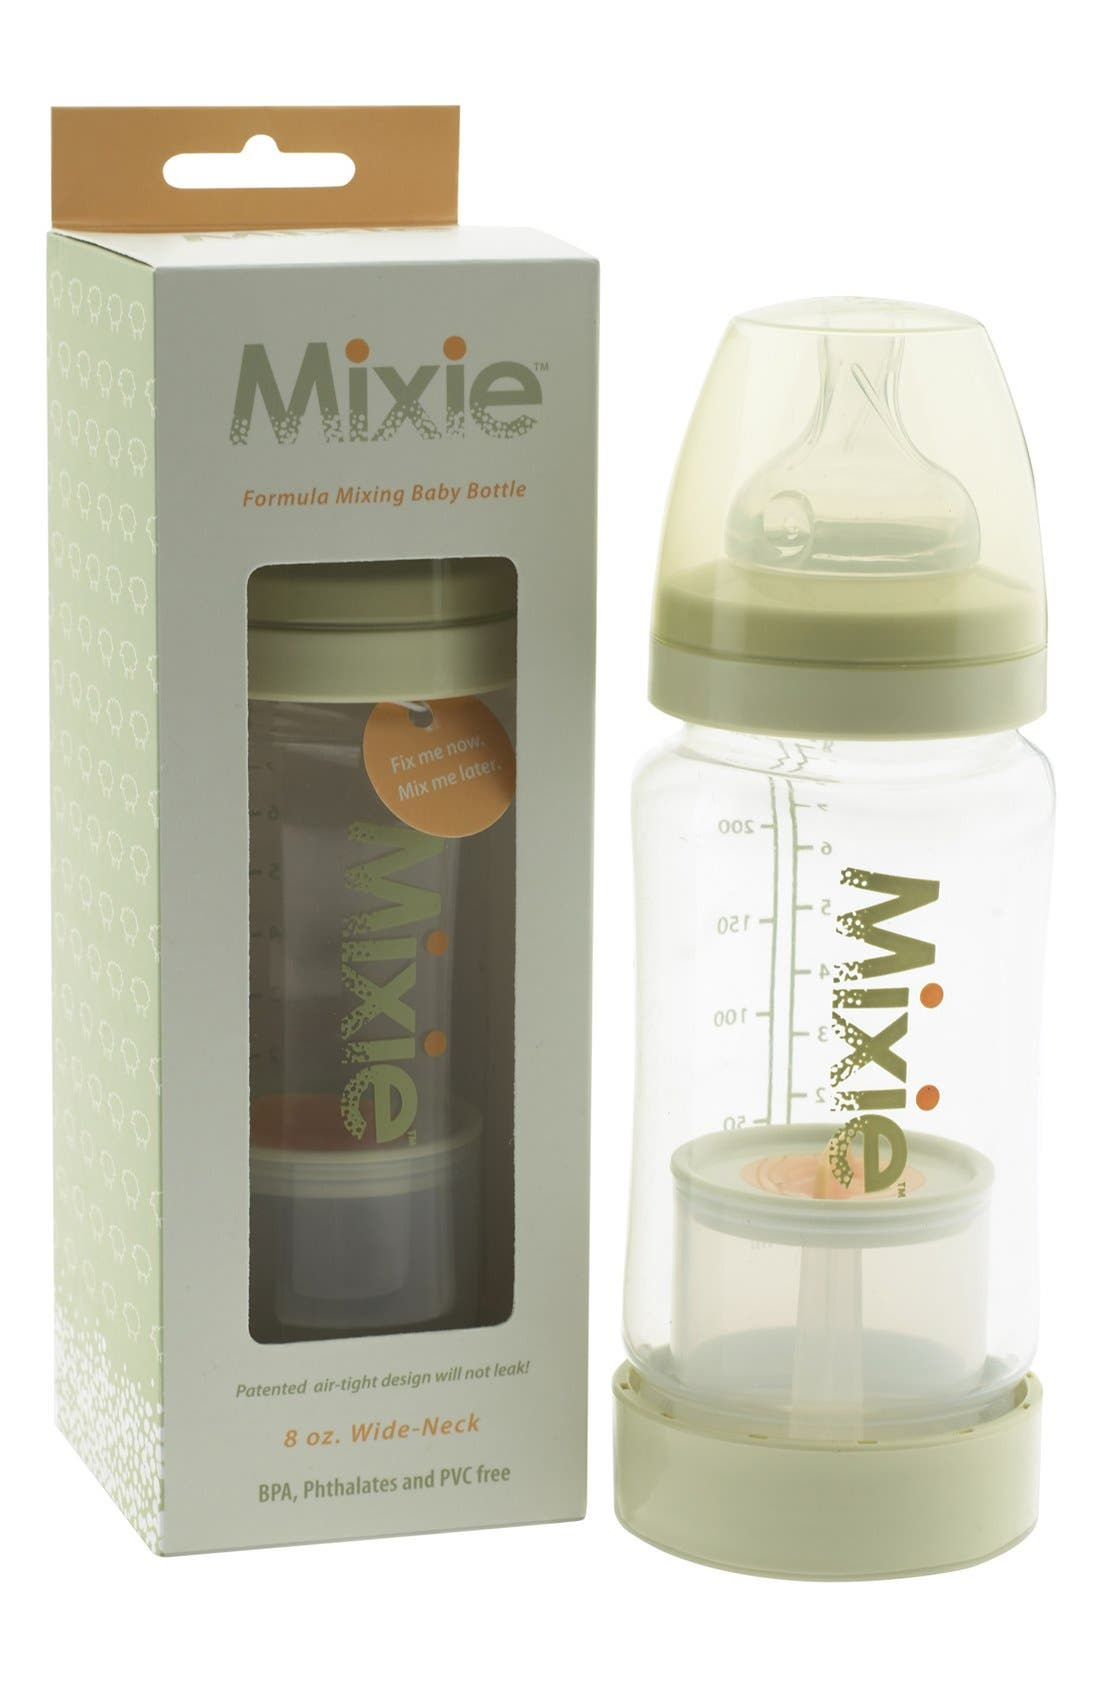 Main Image - Mixie Baby Formula Mixing Baby Bottle